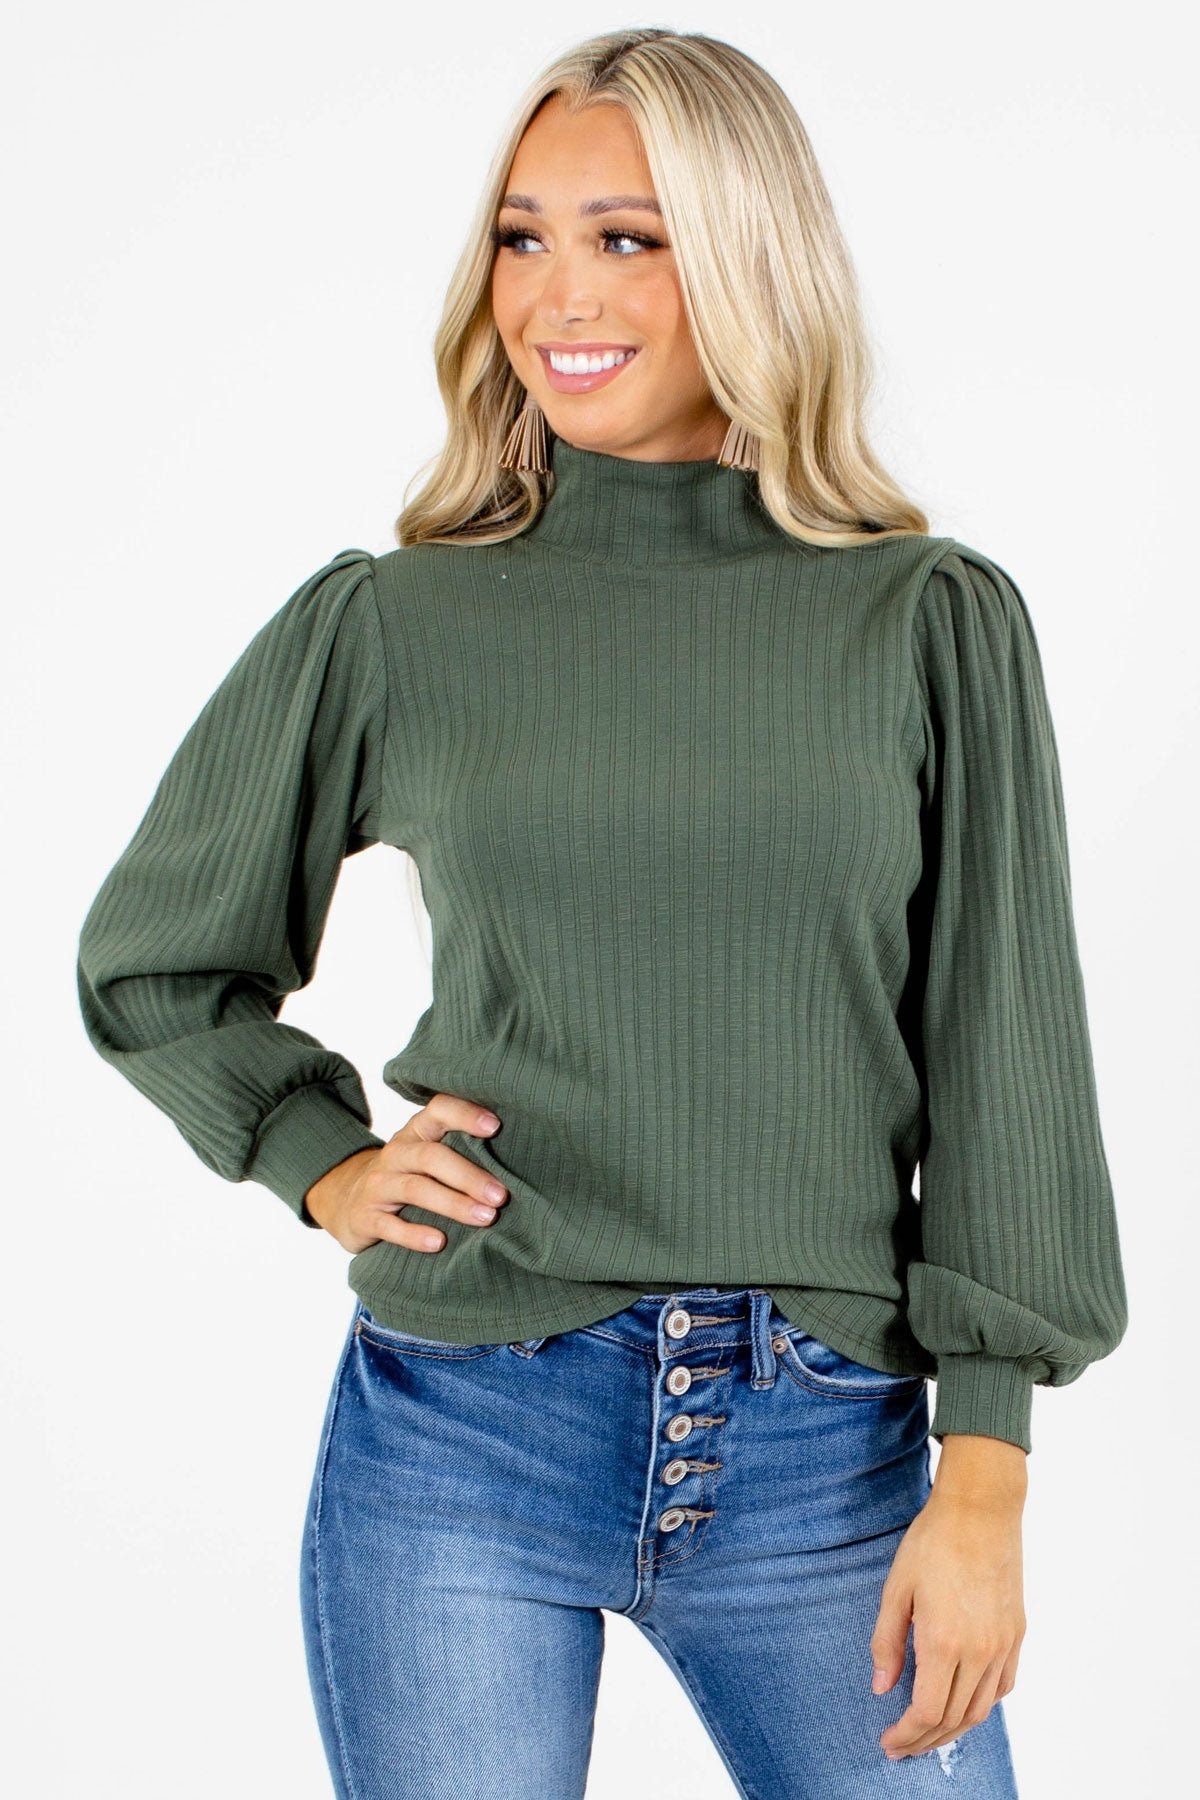 Green Bishop Style Sleeve Boutique Tops for Women